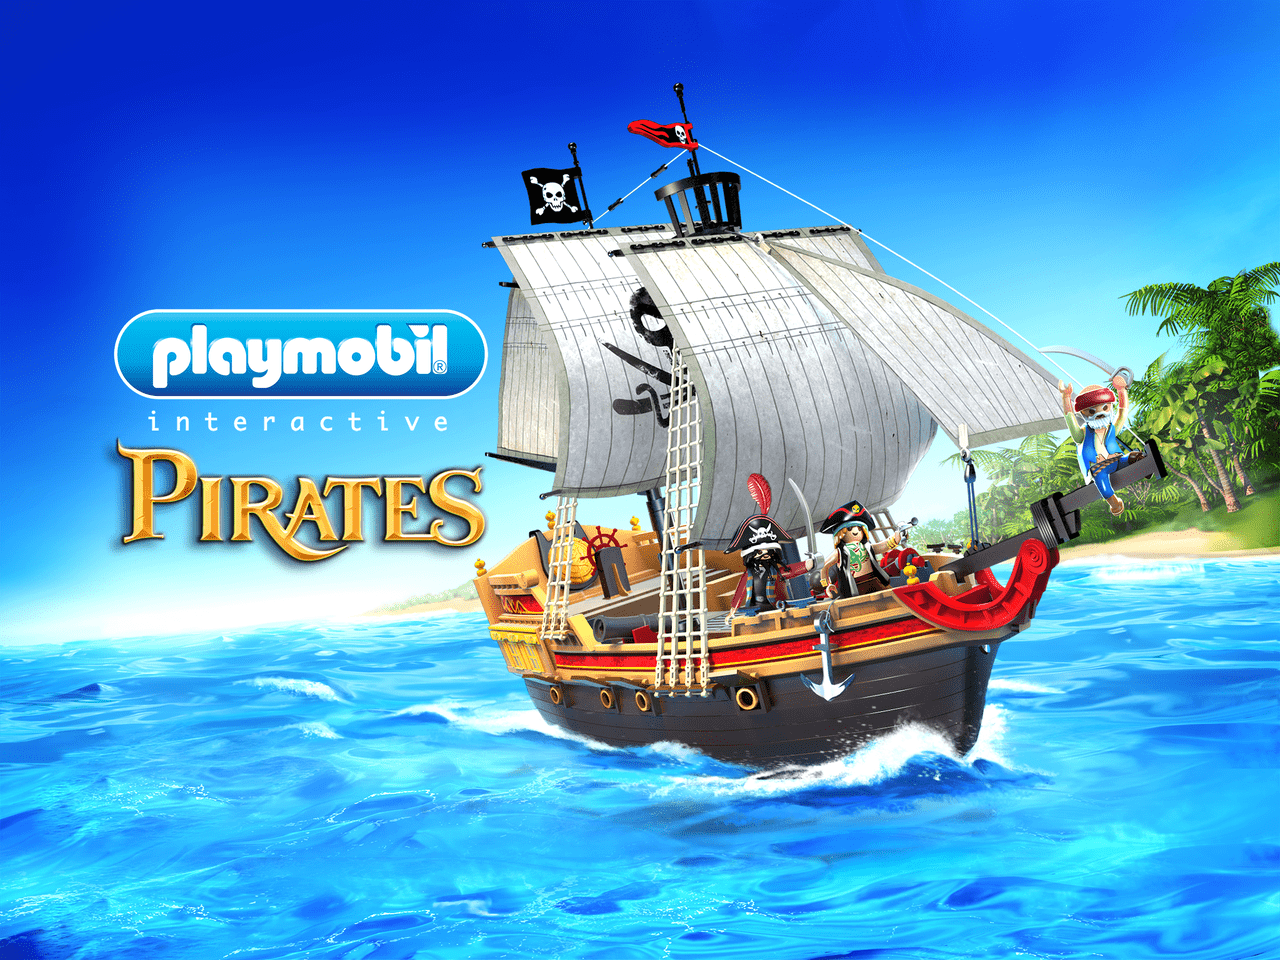 aplicativo playmobil piratas para android e iphone